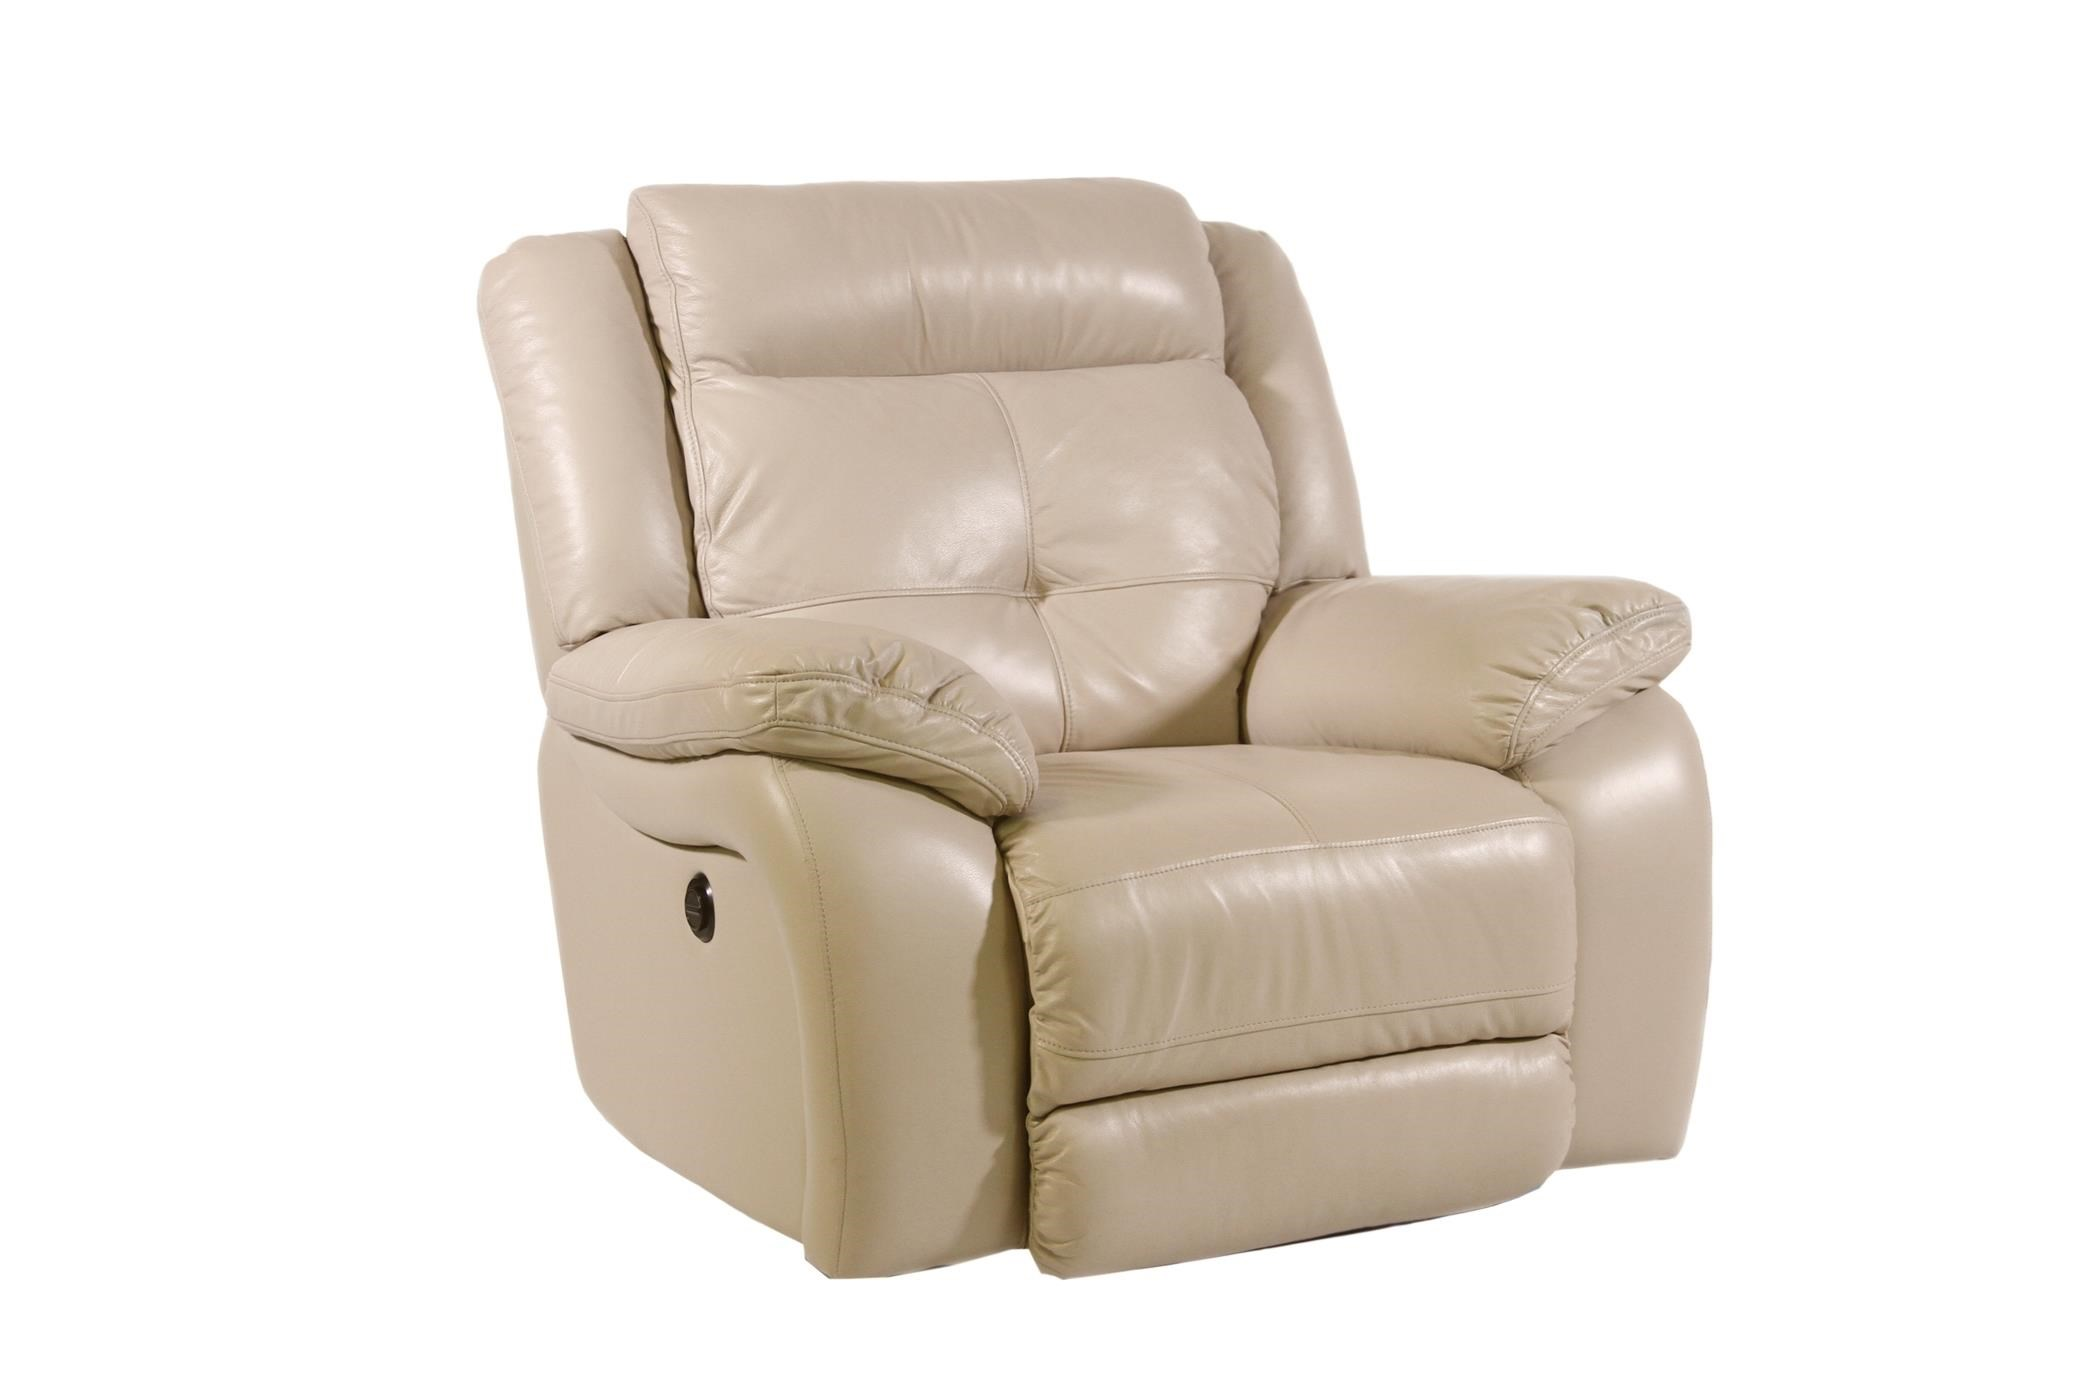 Futura Leather Furniture Futura Leather Pebble Power Reclining Chair Homeworld